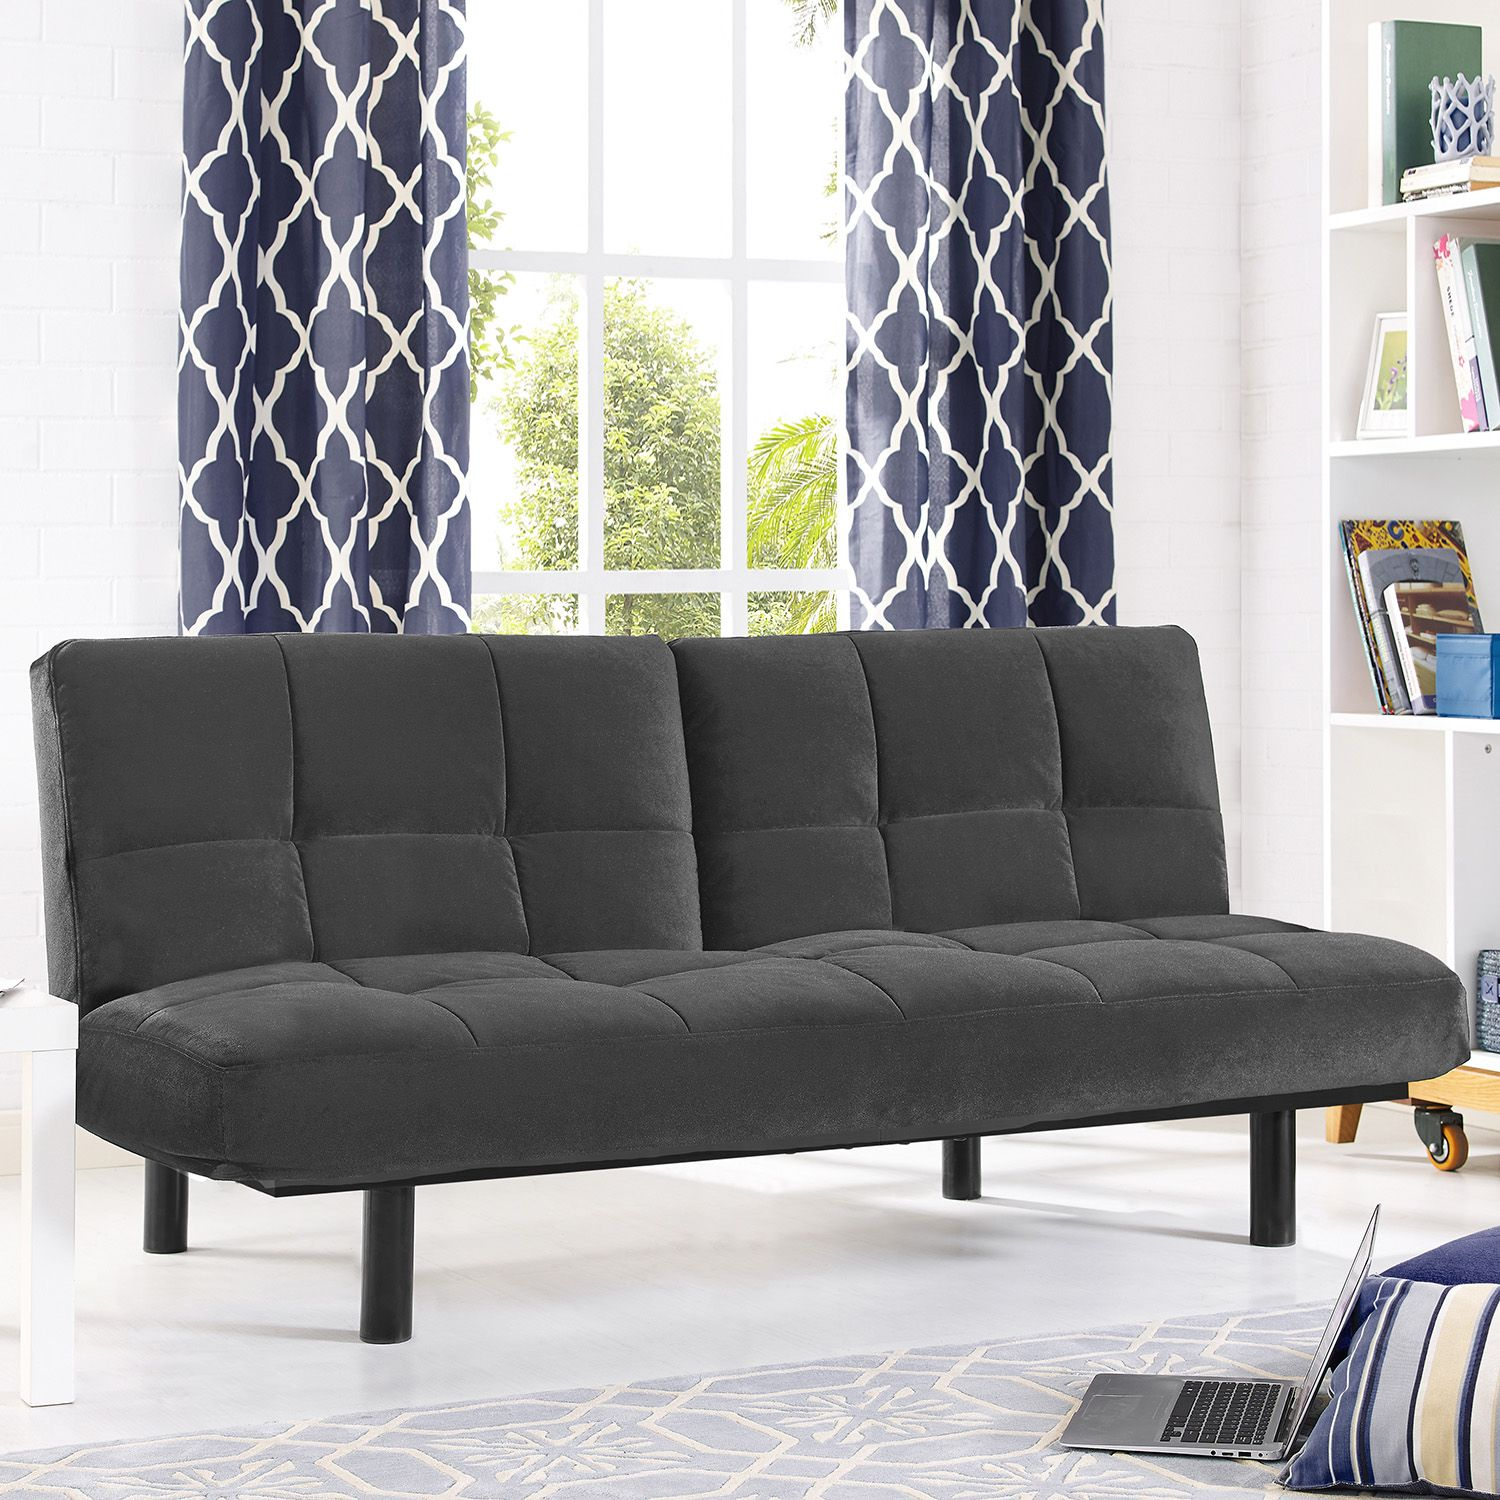 Medium image of serta khloe convertible futon sofa bed